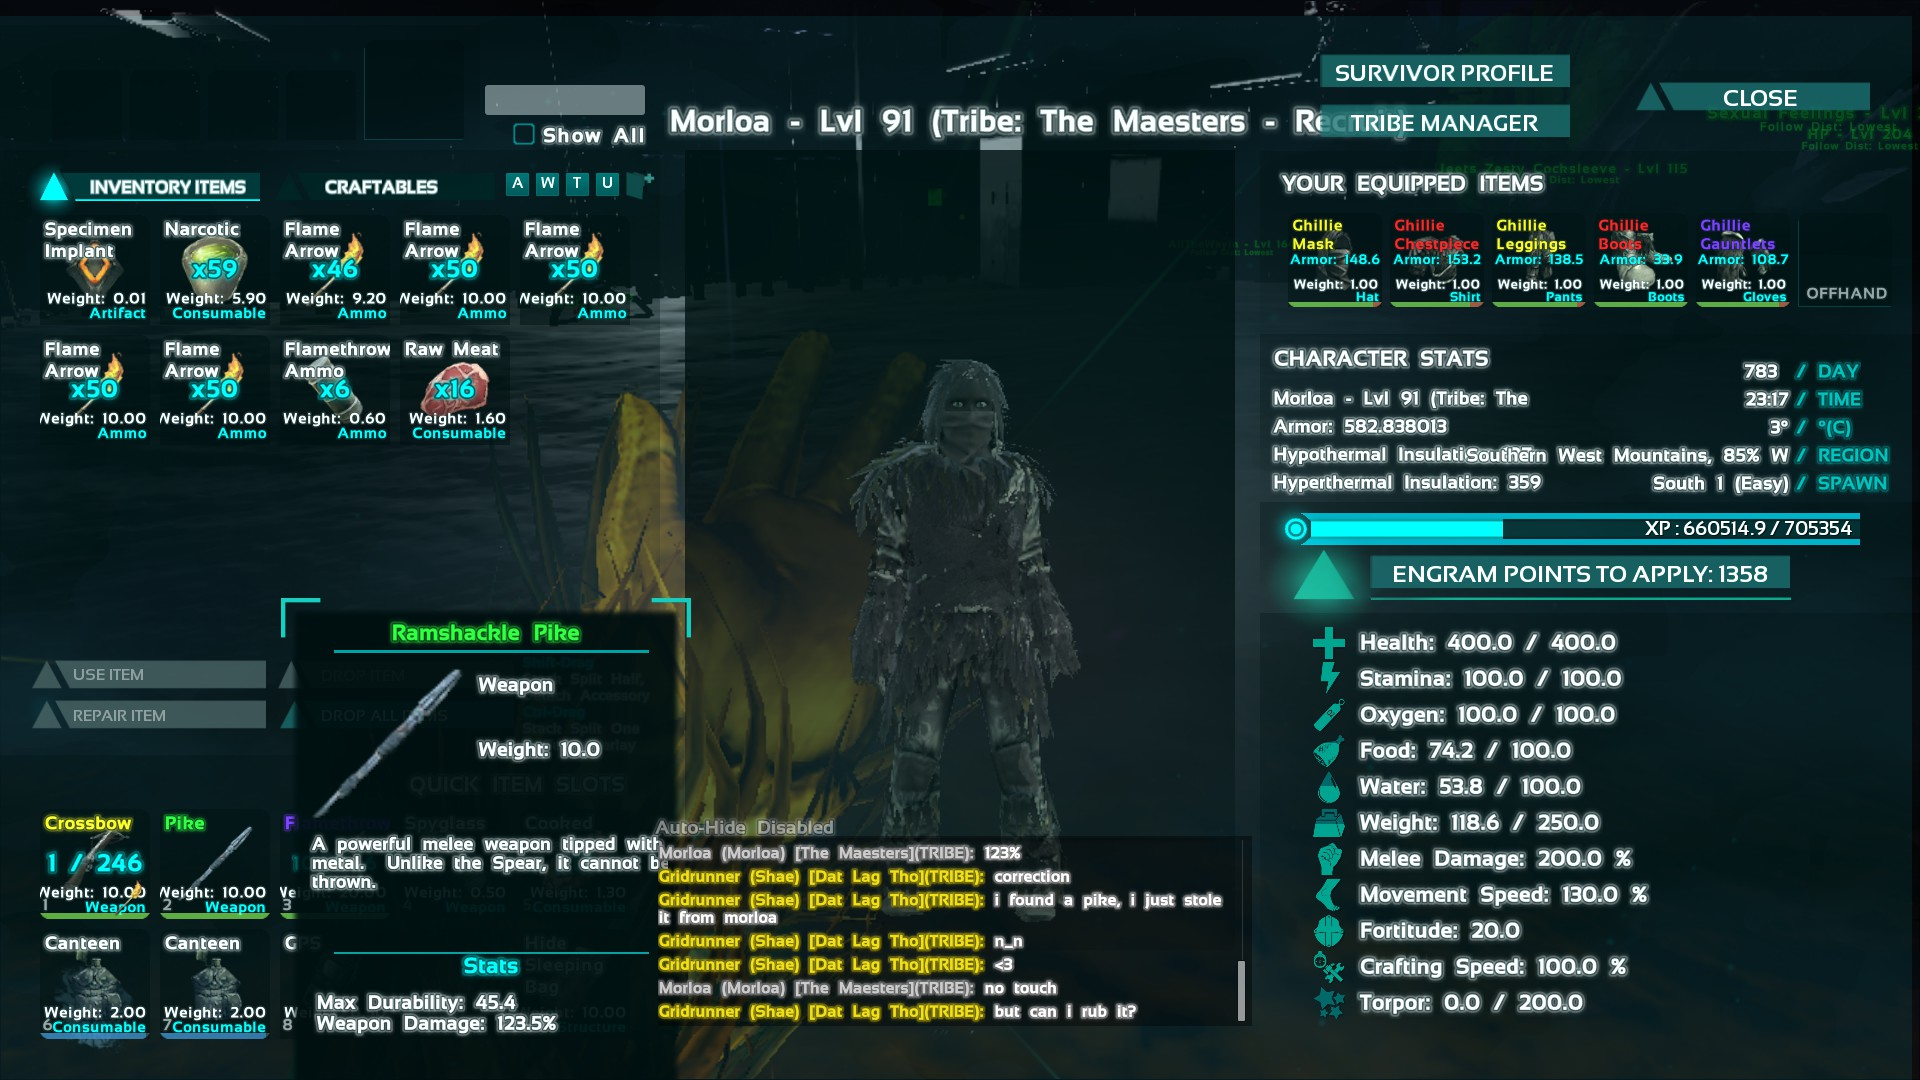 Possible weapon blueprints on se general ark official 346110screenshots201610231613421g malvernweather